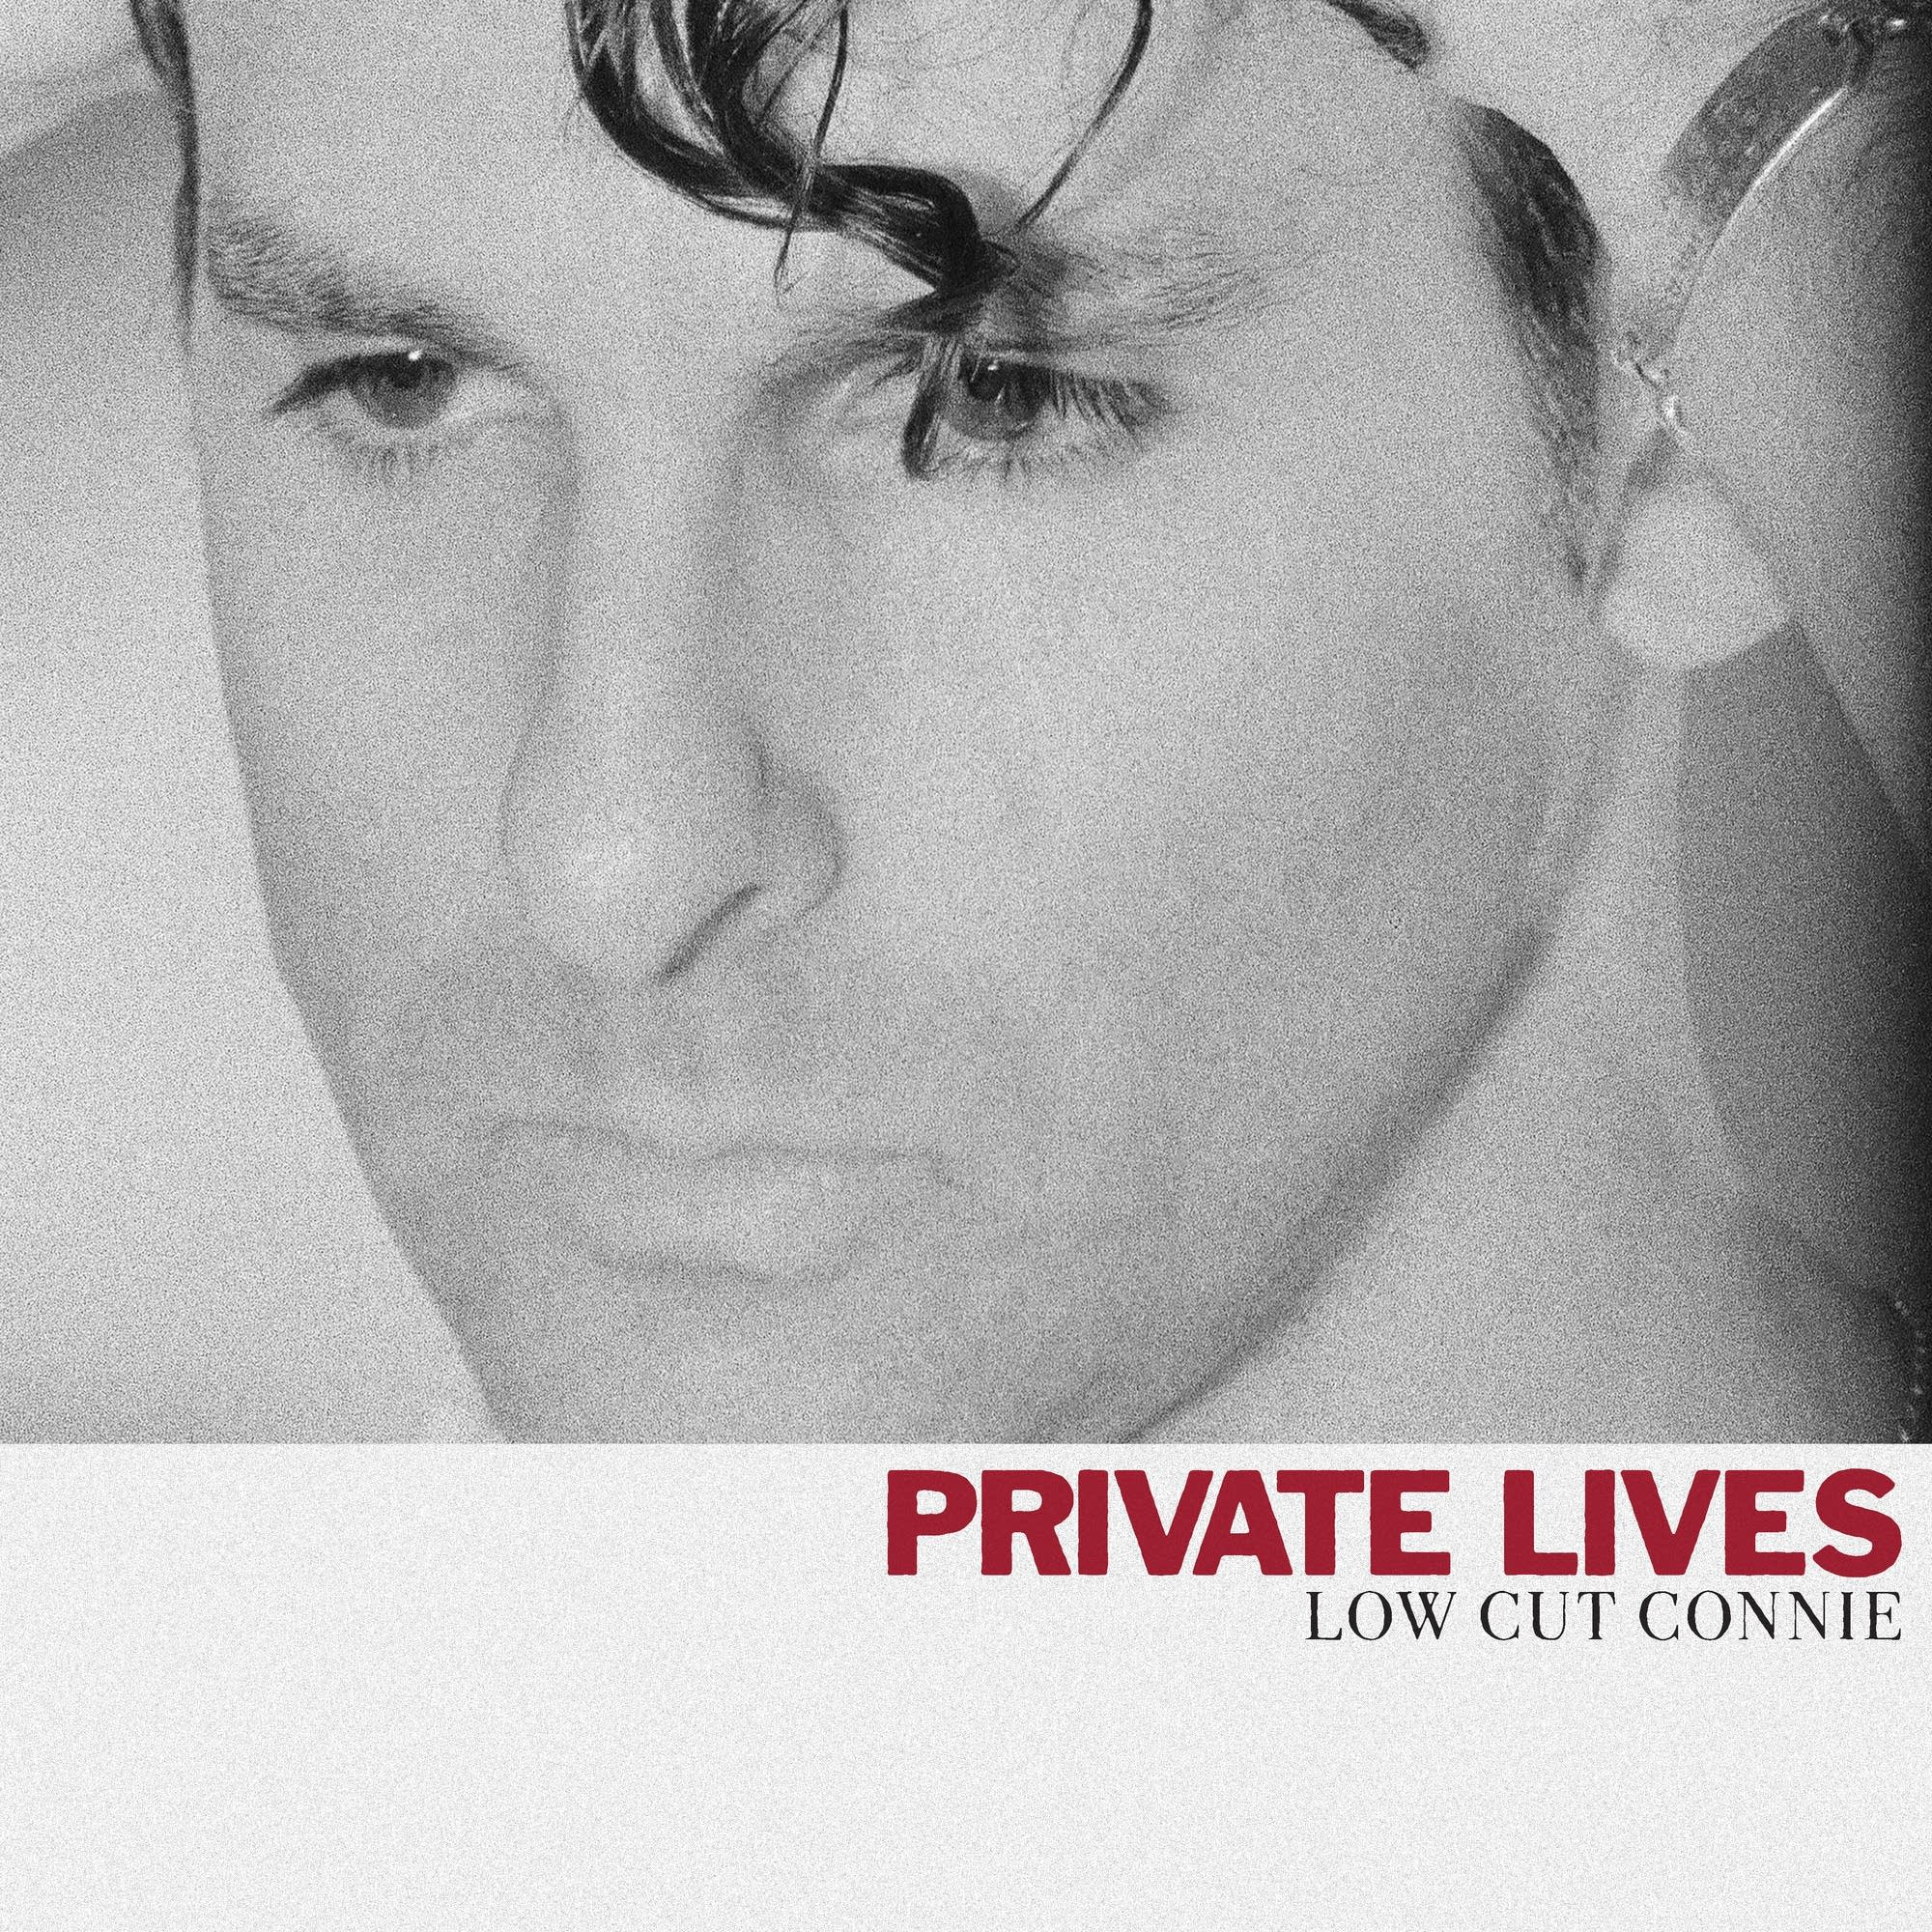 Low Cut Connie, 'Private Lives'